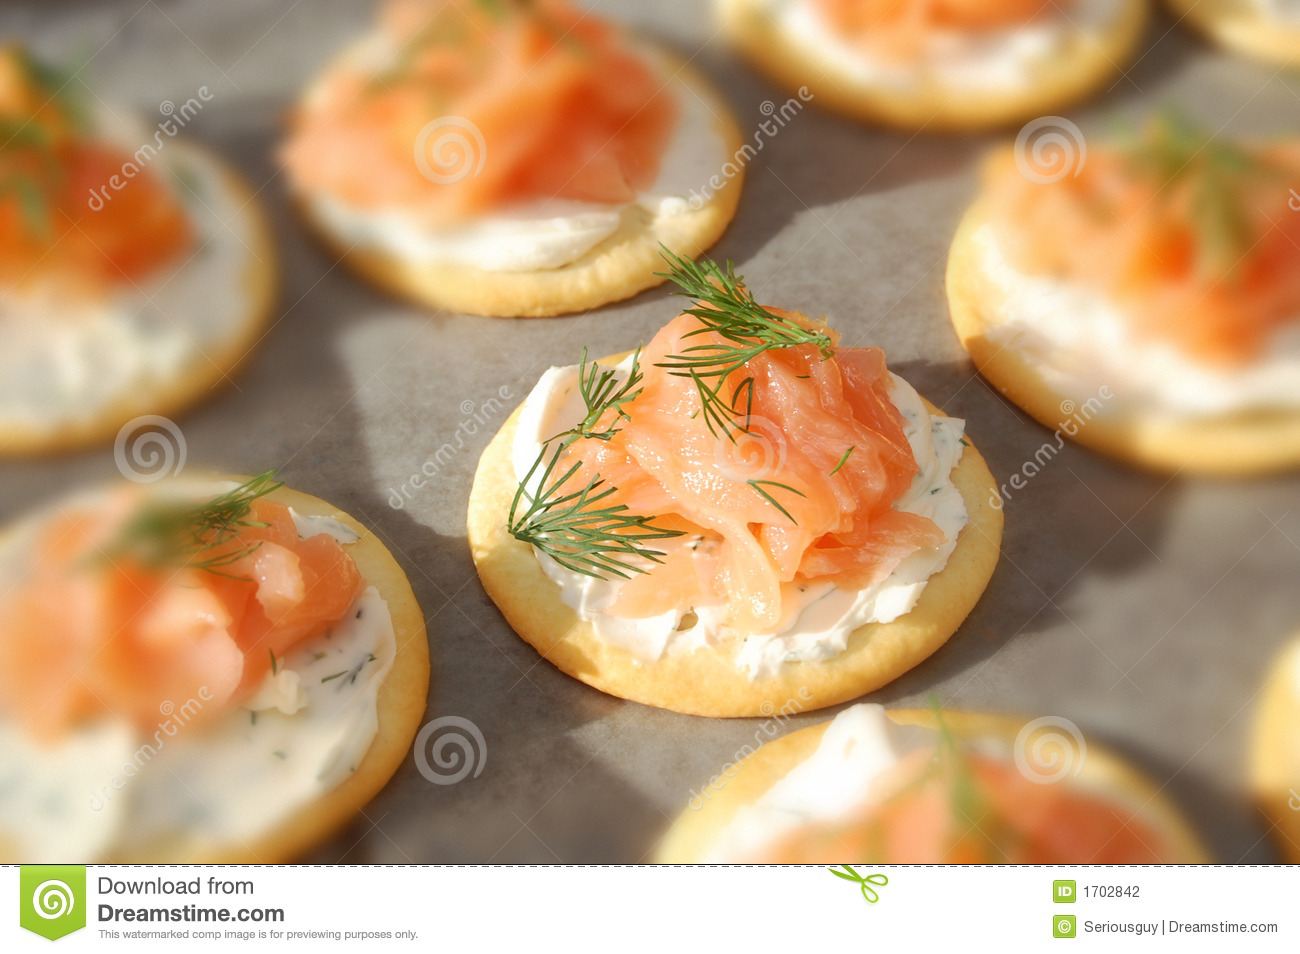 Image Result For Cracker Zalm